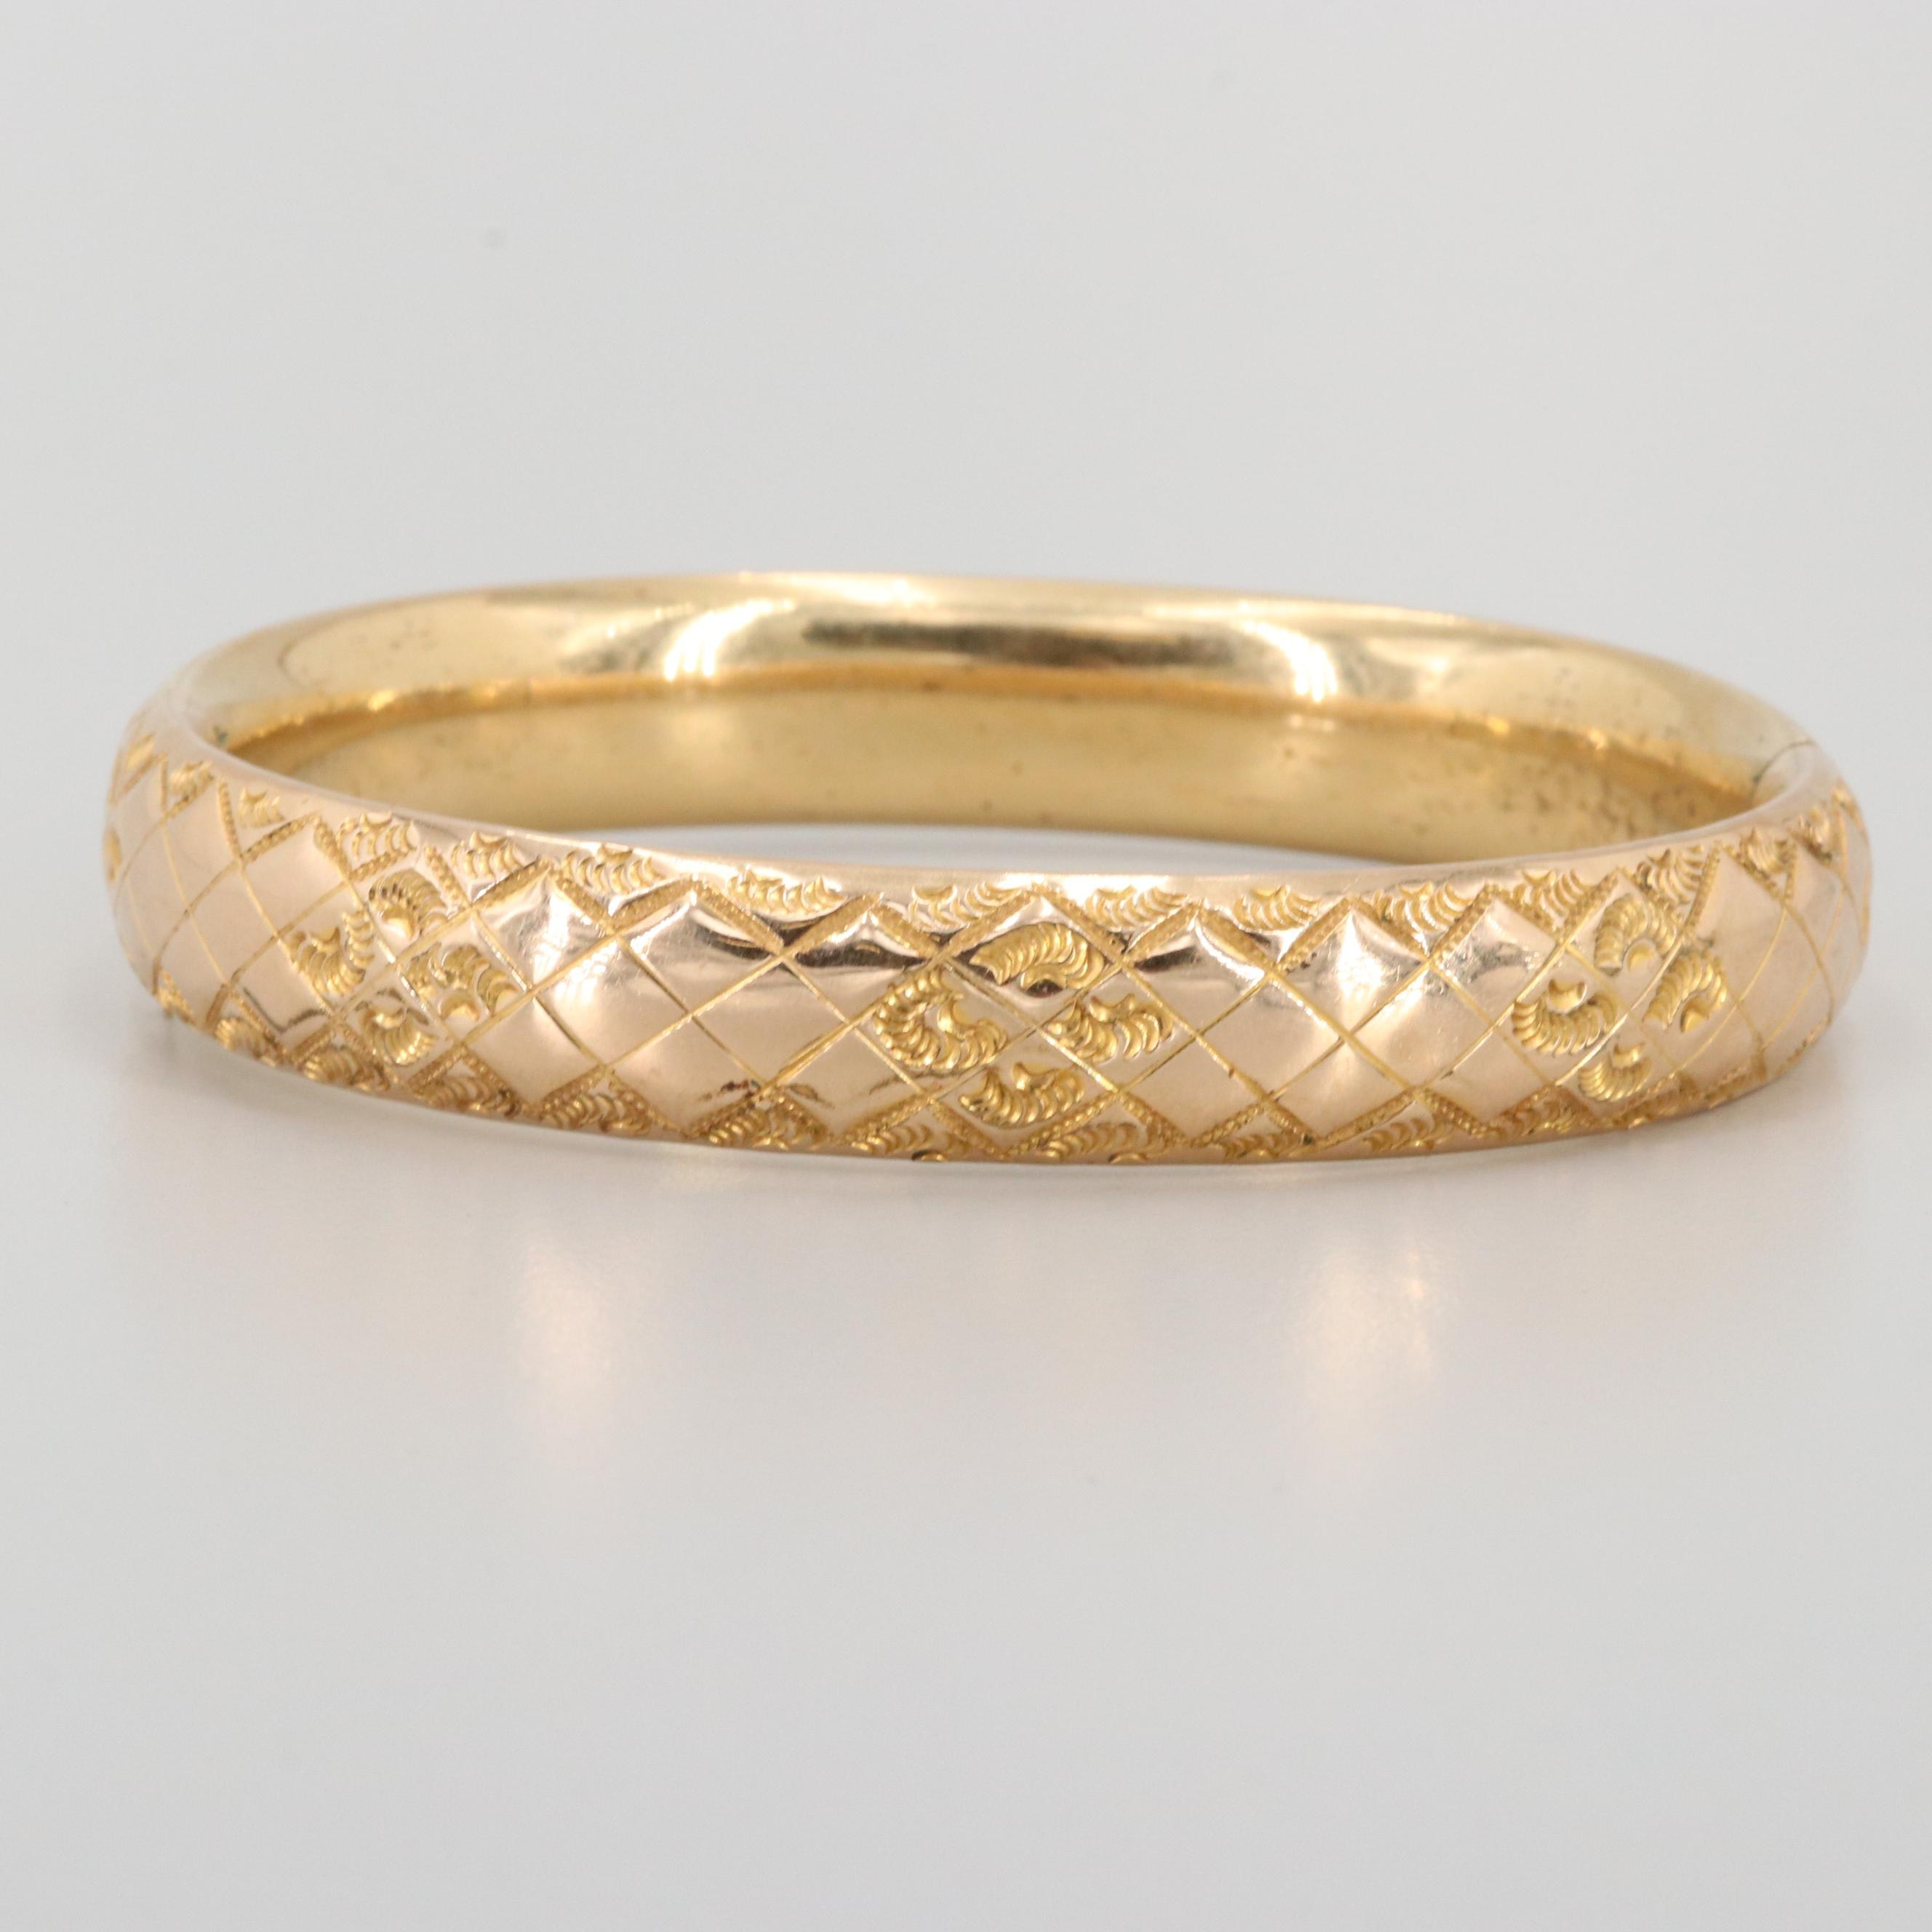 Vintage Gold Tone Hinged Bangle Bracelet